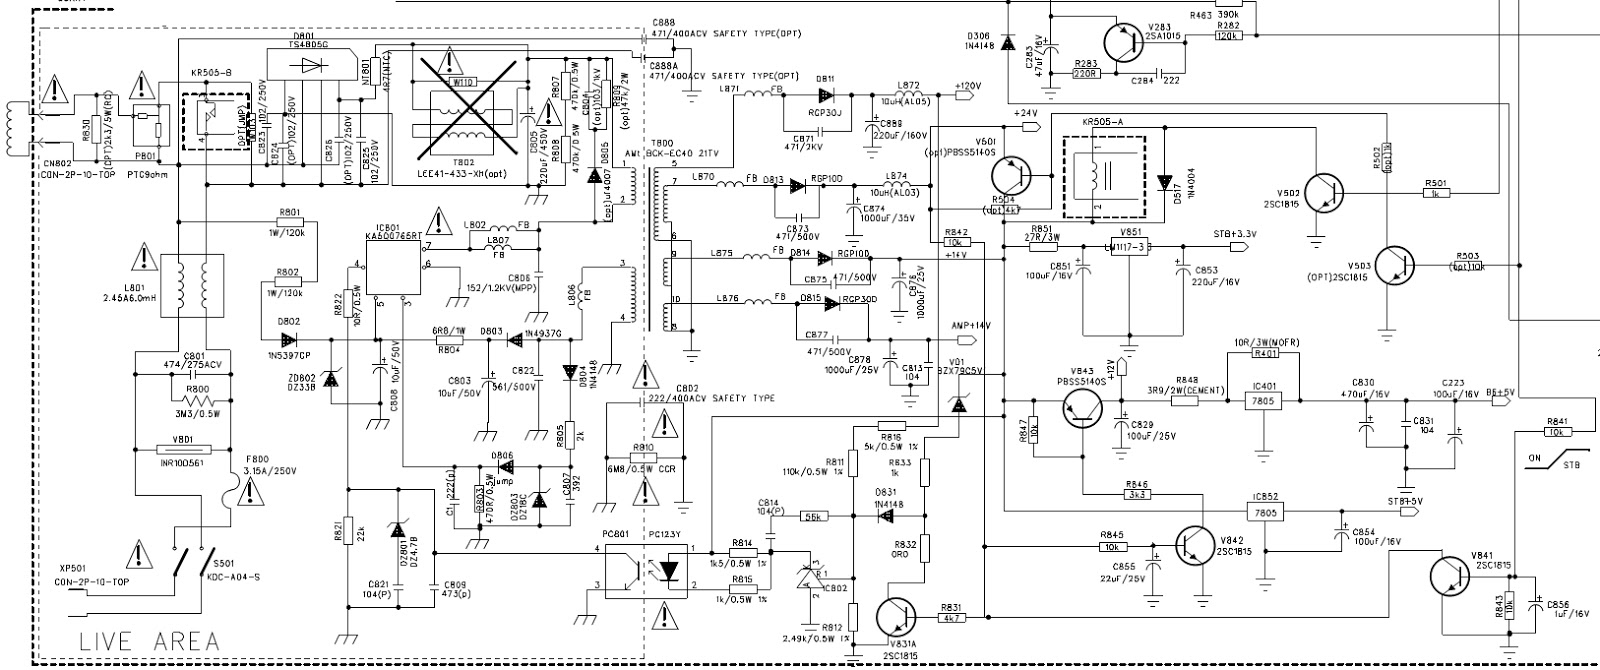 VIDEOCON N2121C - POWER SUPPLY [SMPS] - Schematic [Circuit diagram ...